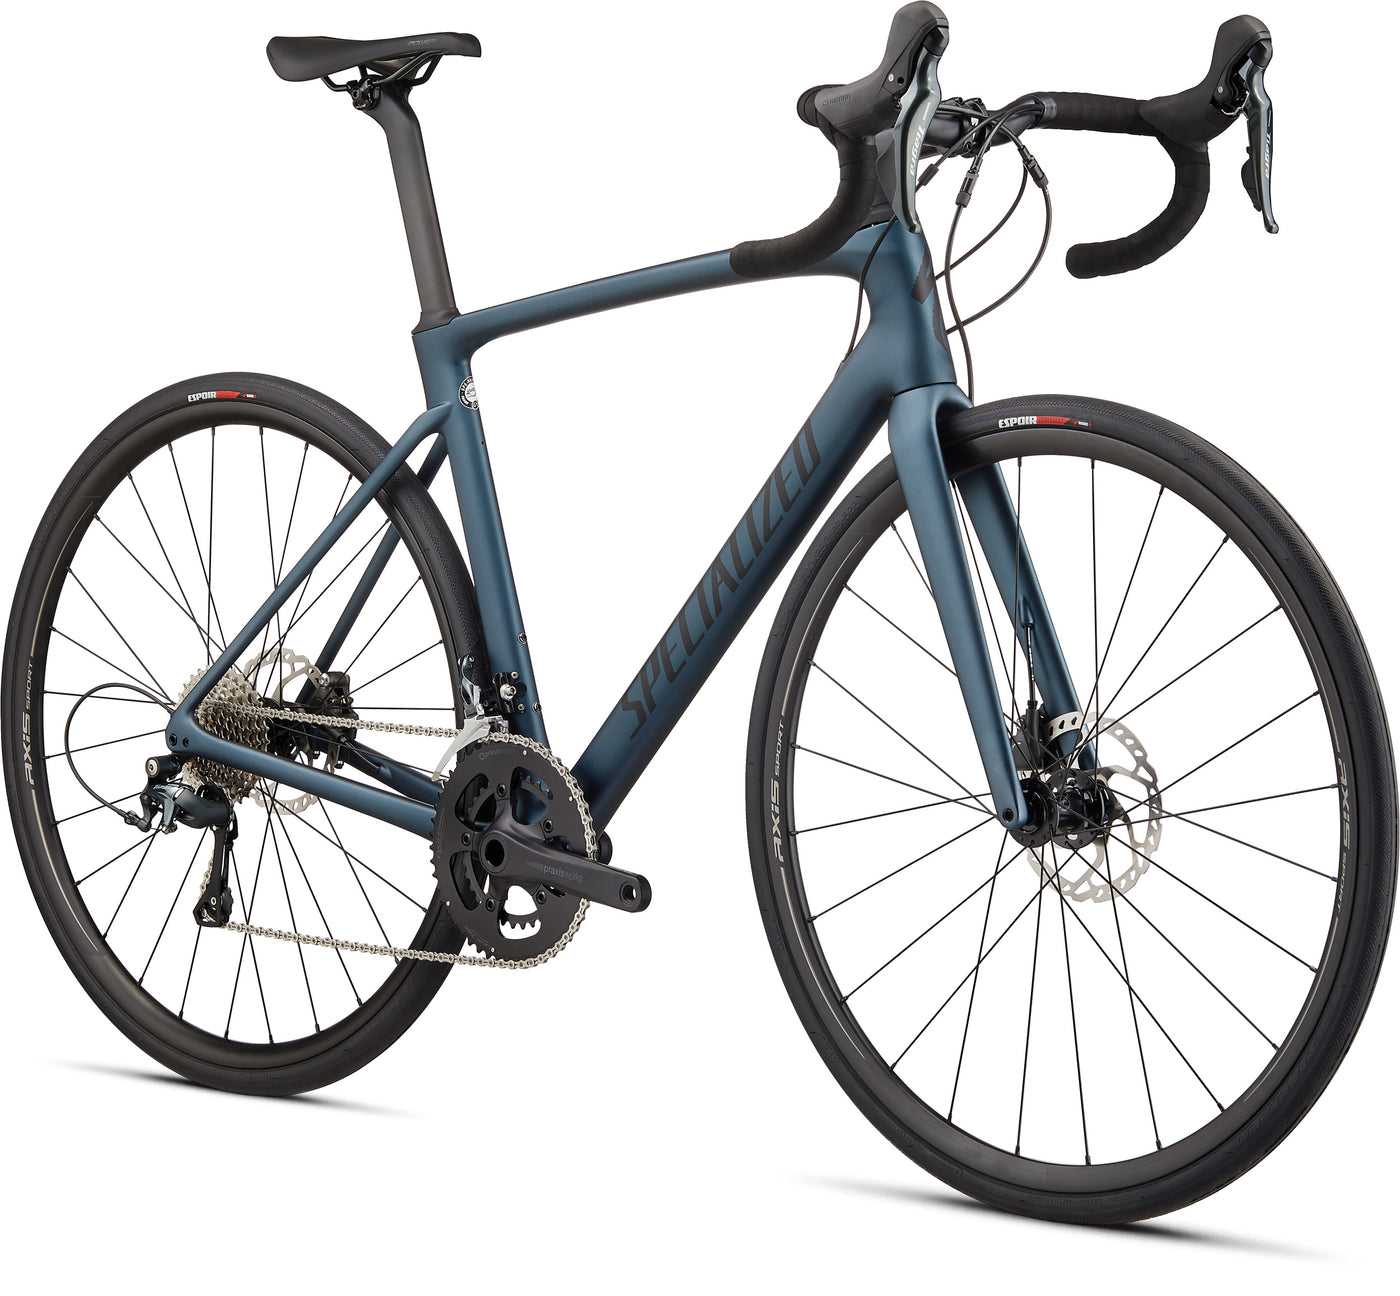 Road bike buyers guide, part two - ENDURANCE